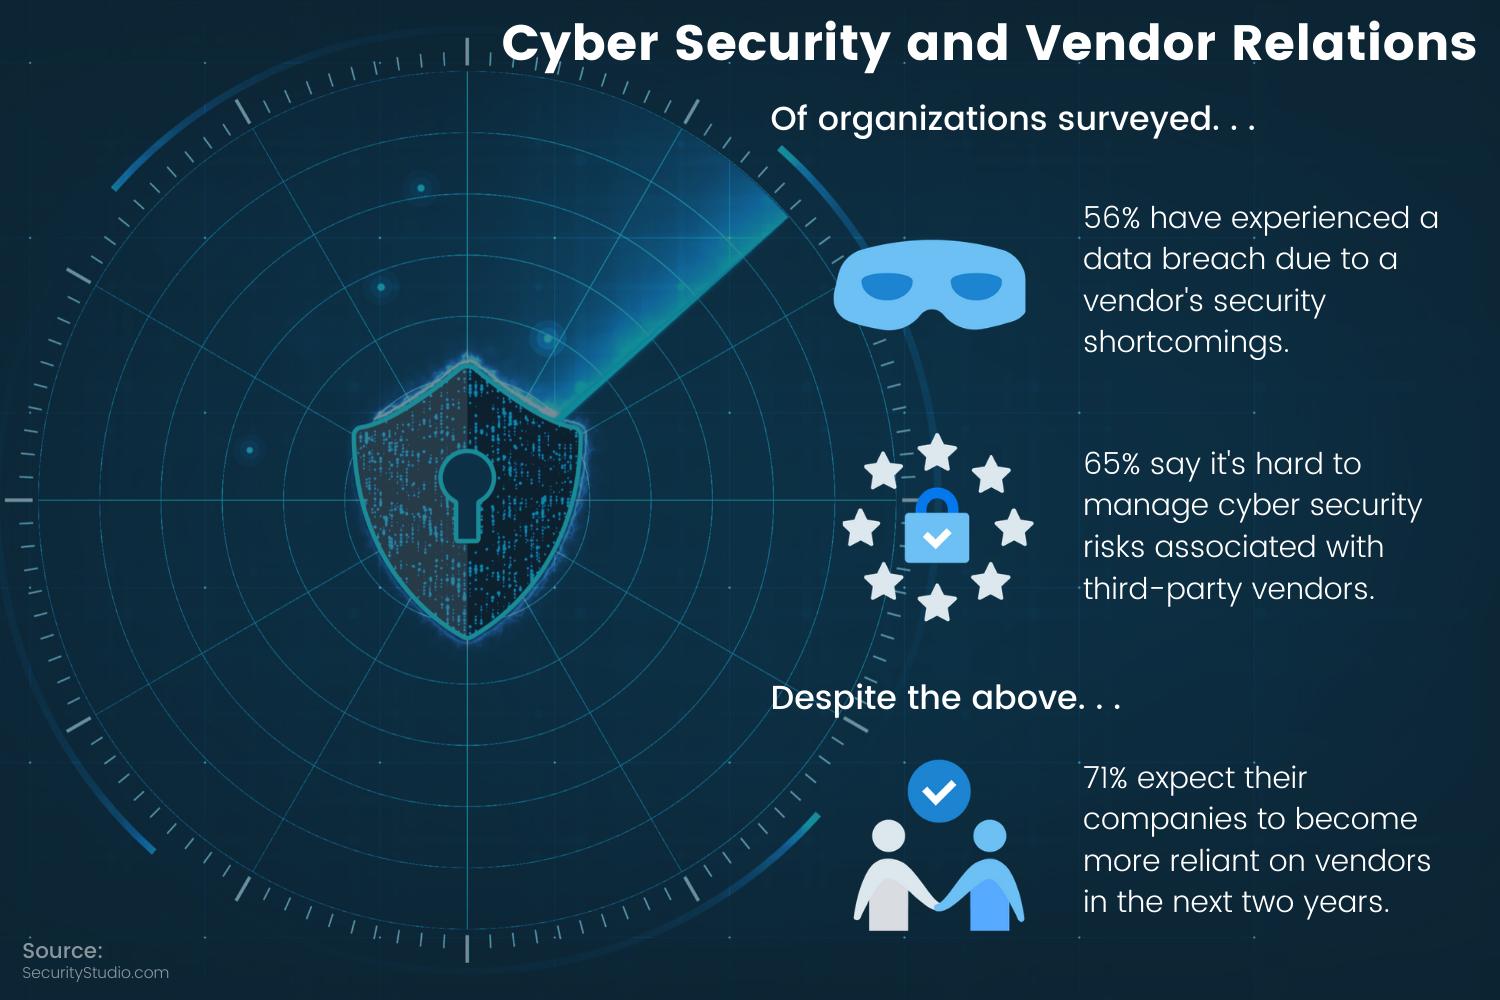 Cyber-Security-and-Vendor-Relations-Info-graphic